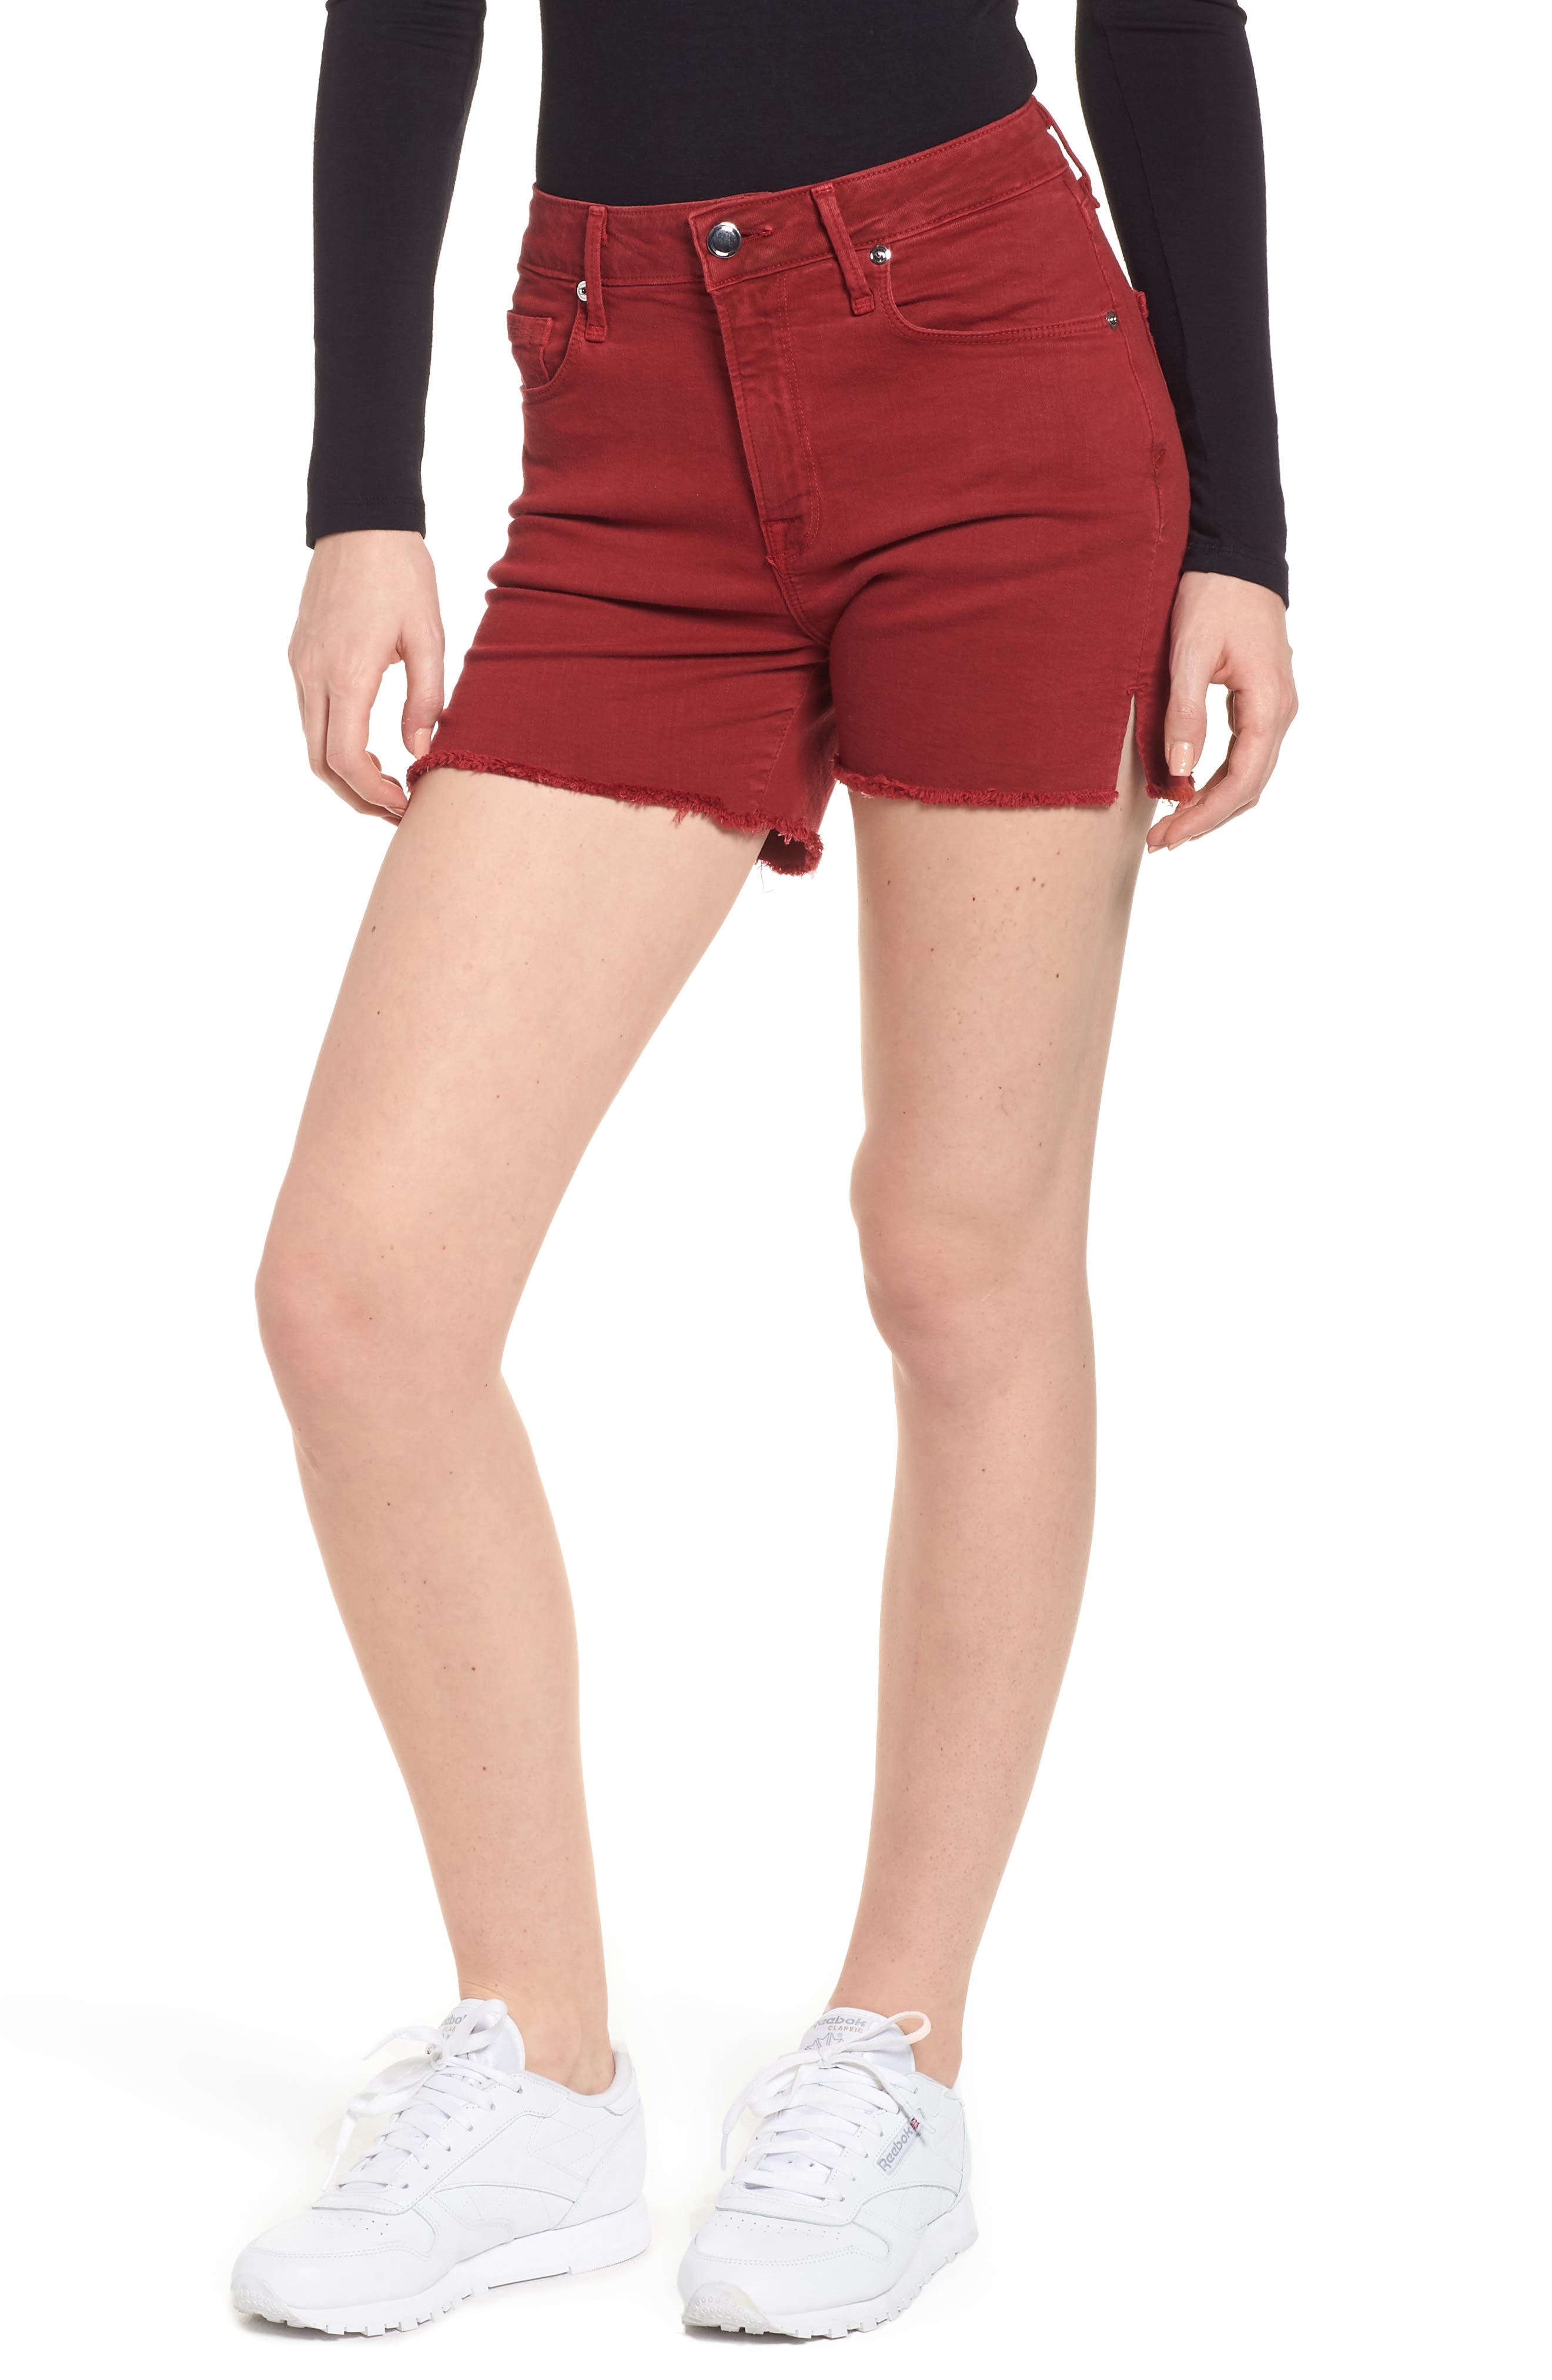 High Waist Cutoff Shorts,                             Main thumbnail 1, color,                             601